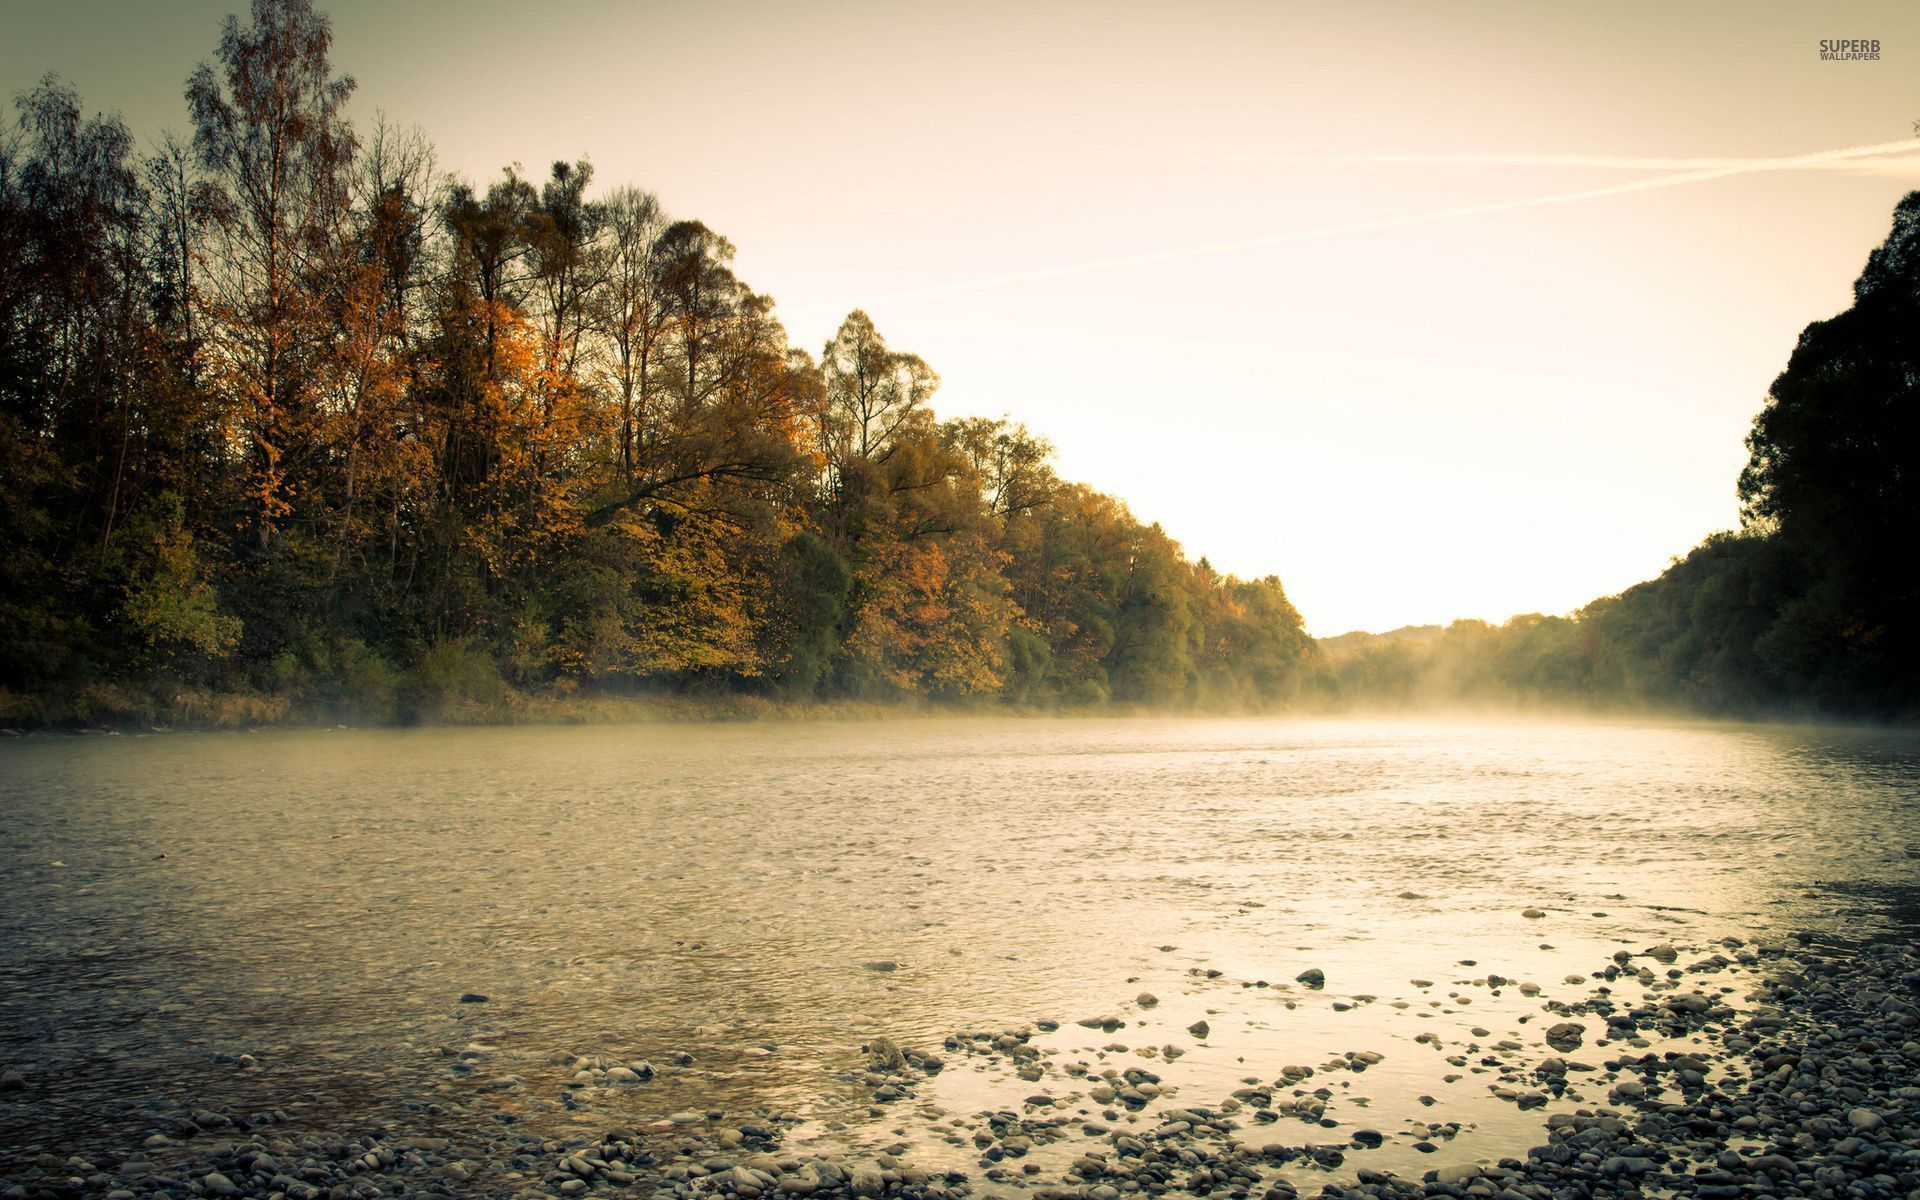 Misty Green Forest Nature River Beautiful 1ziw: Autumn Forest & Misty River Wallpapers